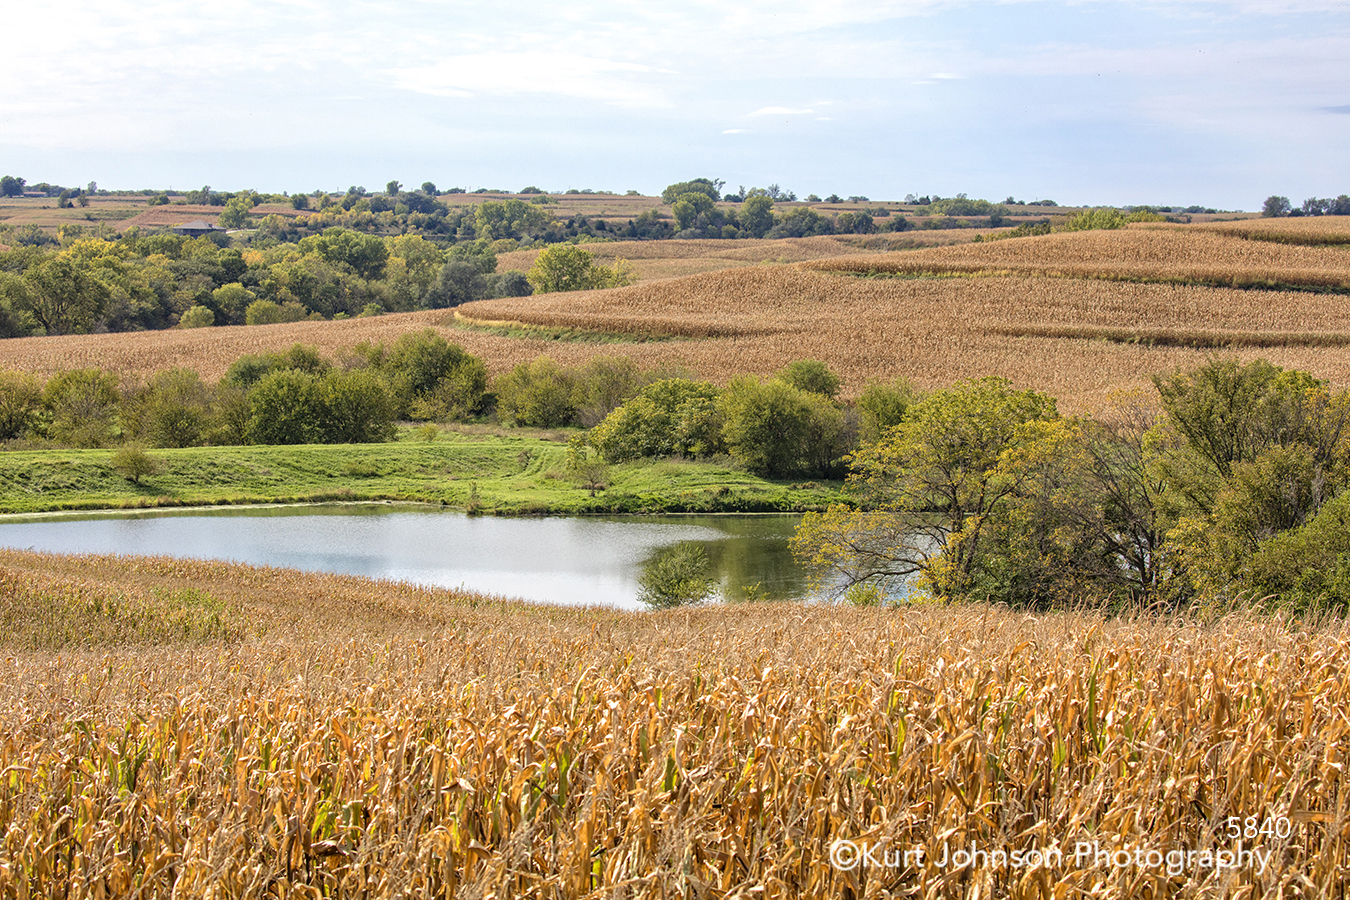 water yellow gold wheat field river stream bushes midwest trees open landscape waterscape